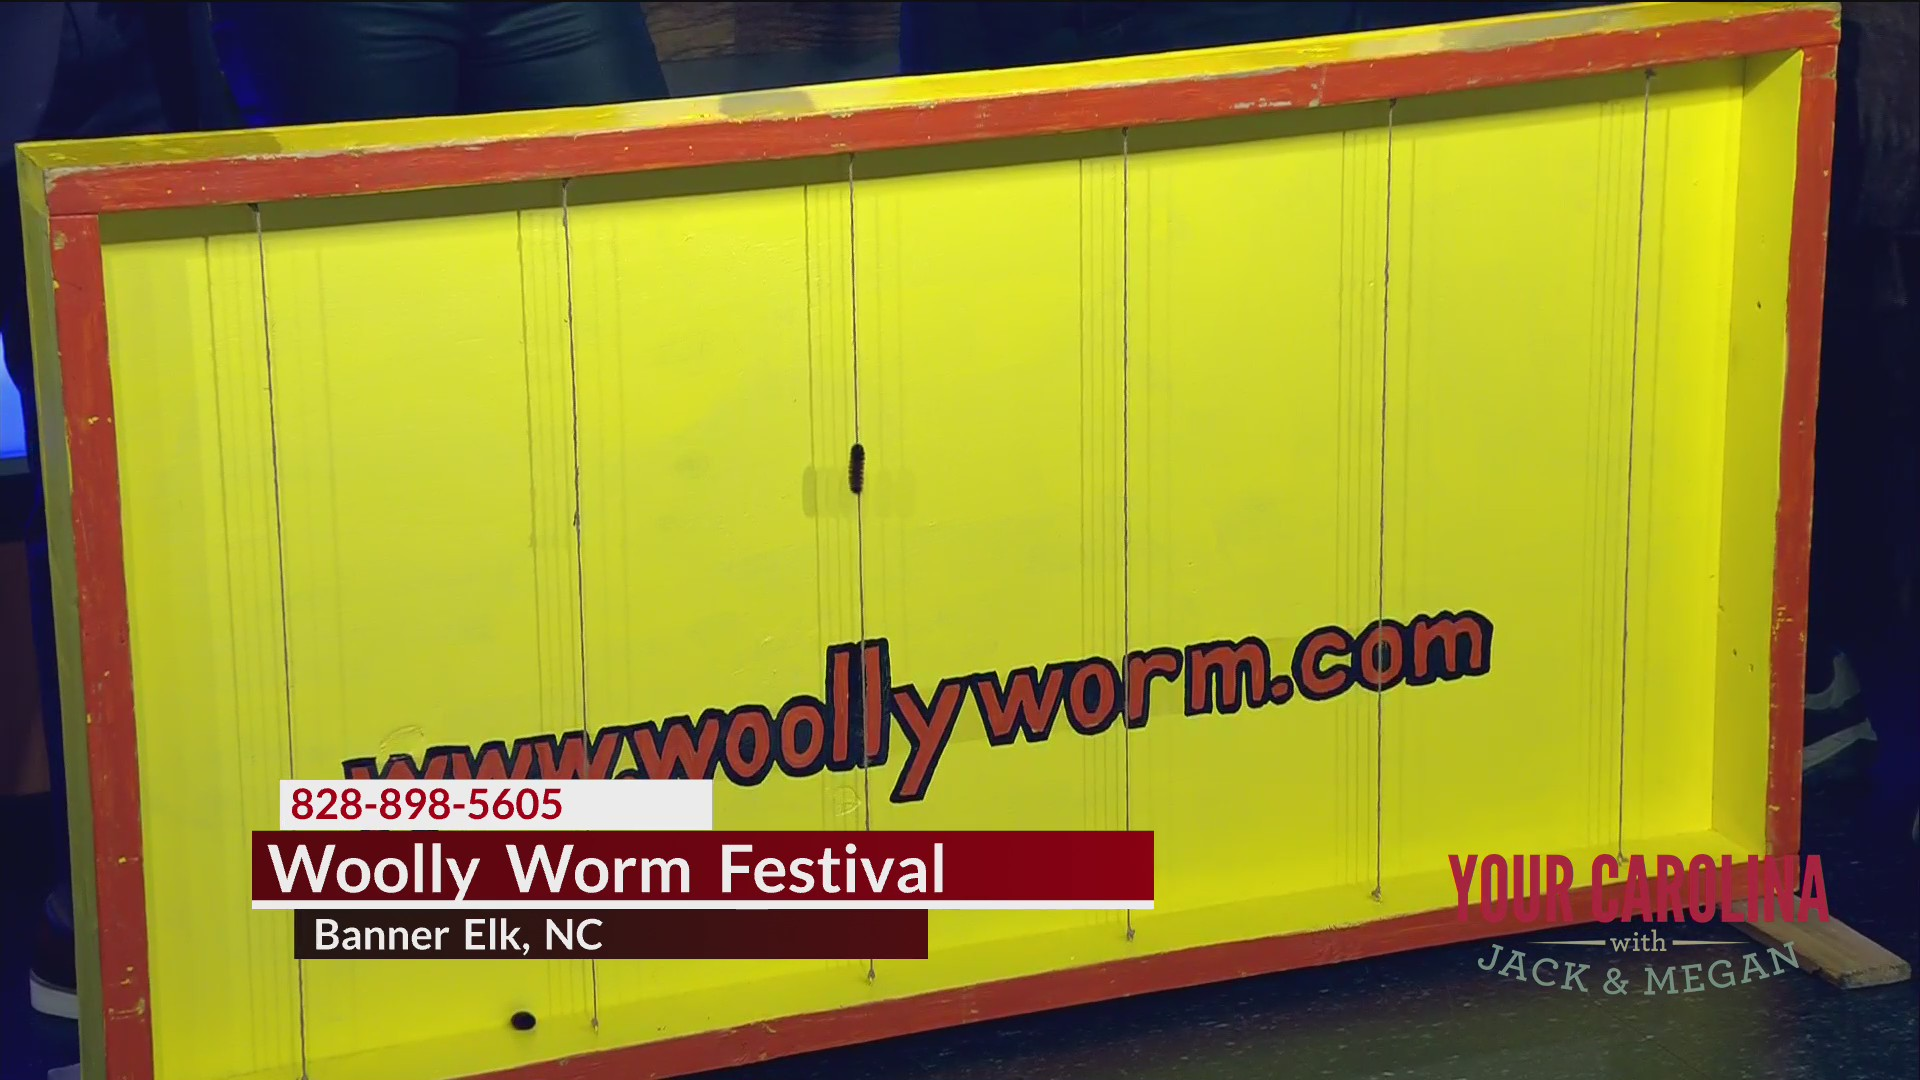 42nd Annual Woolly Worm Festival